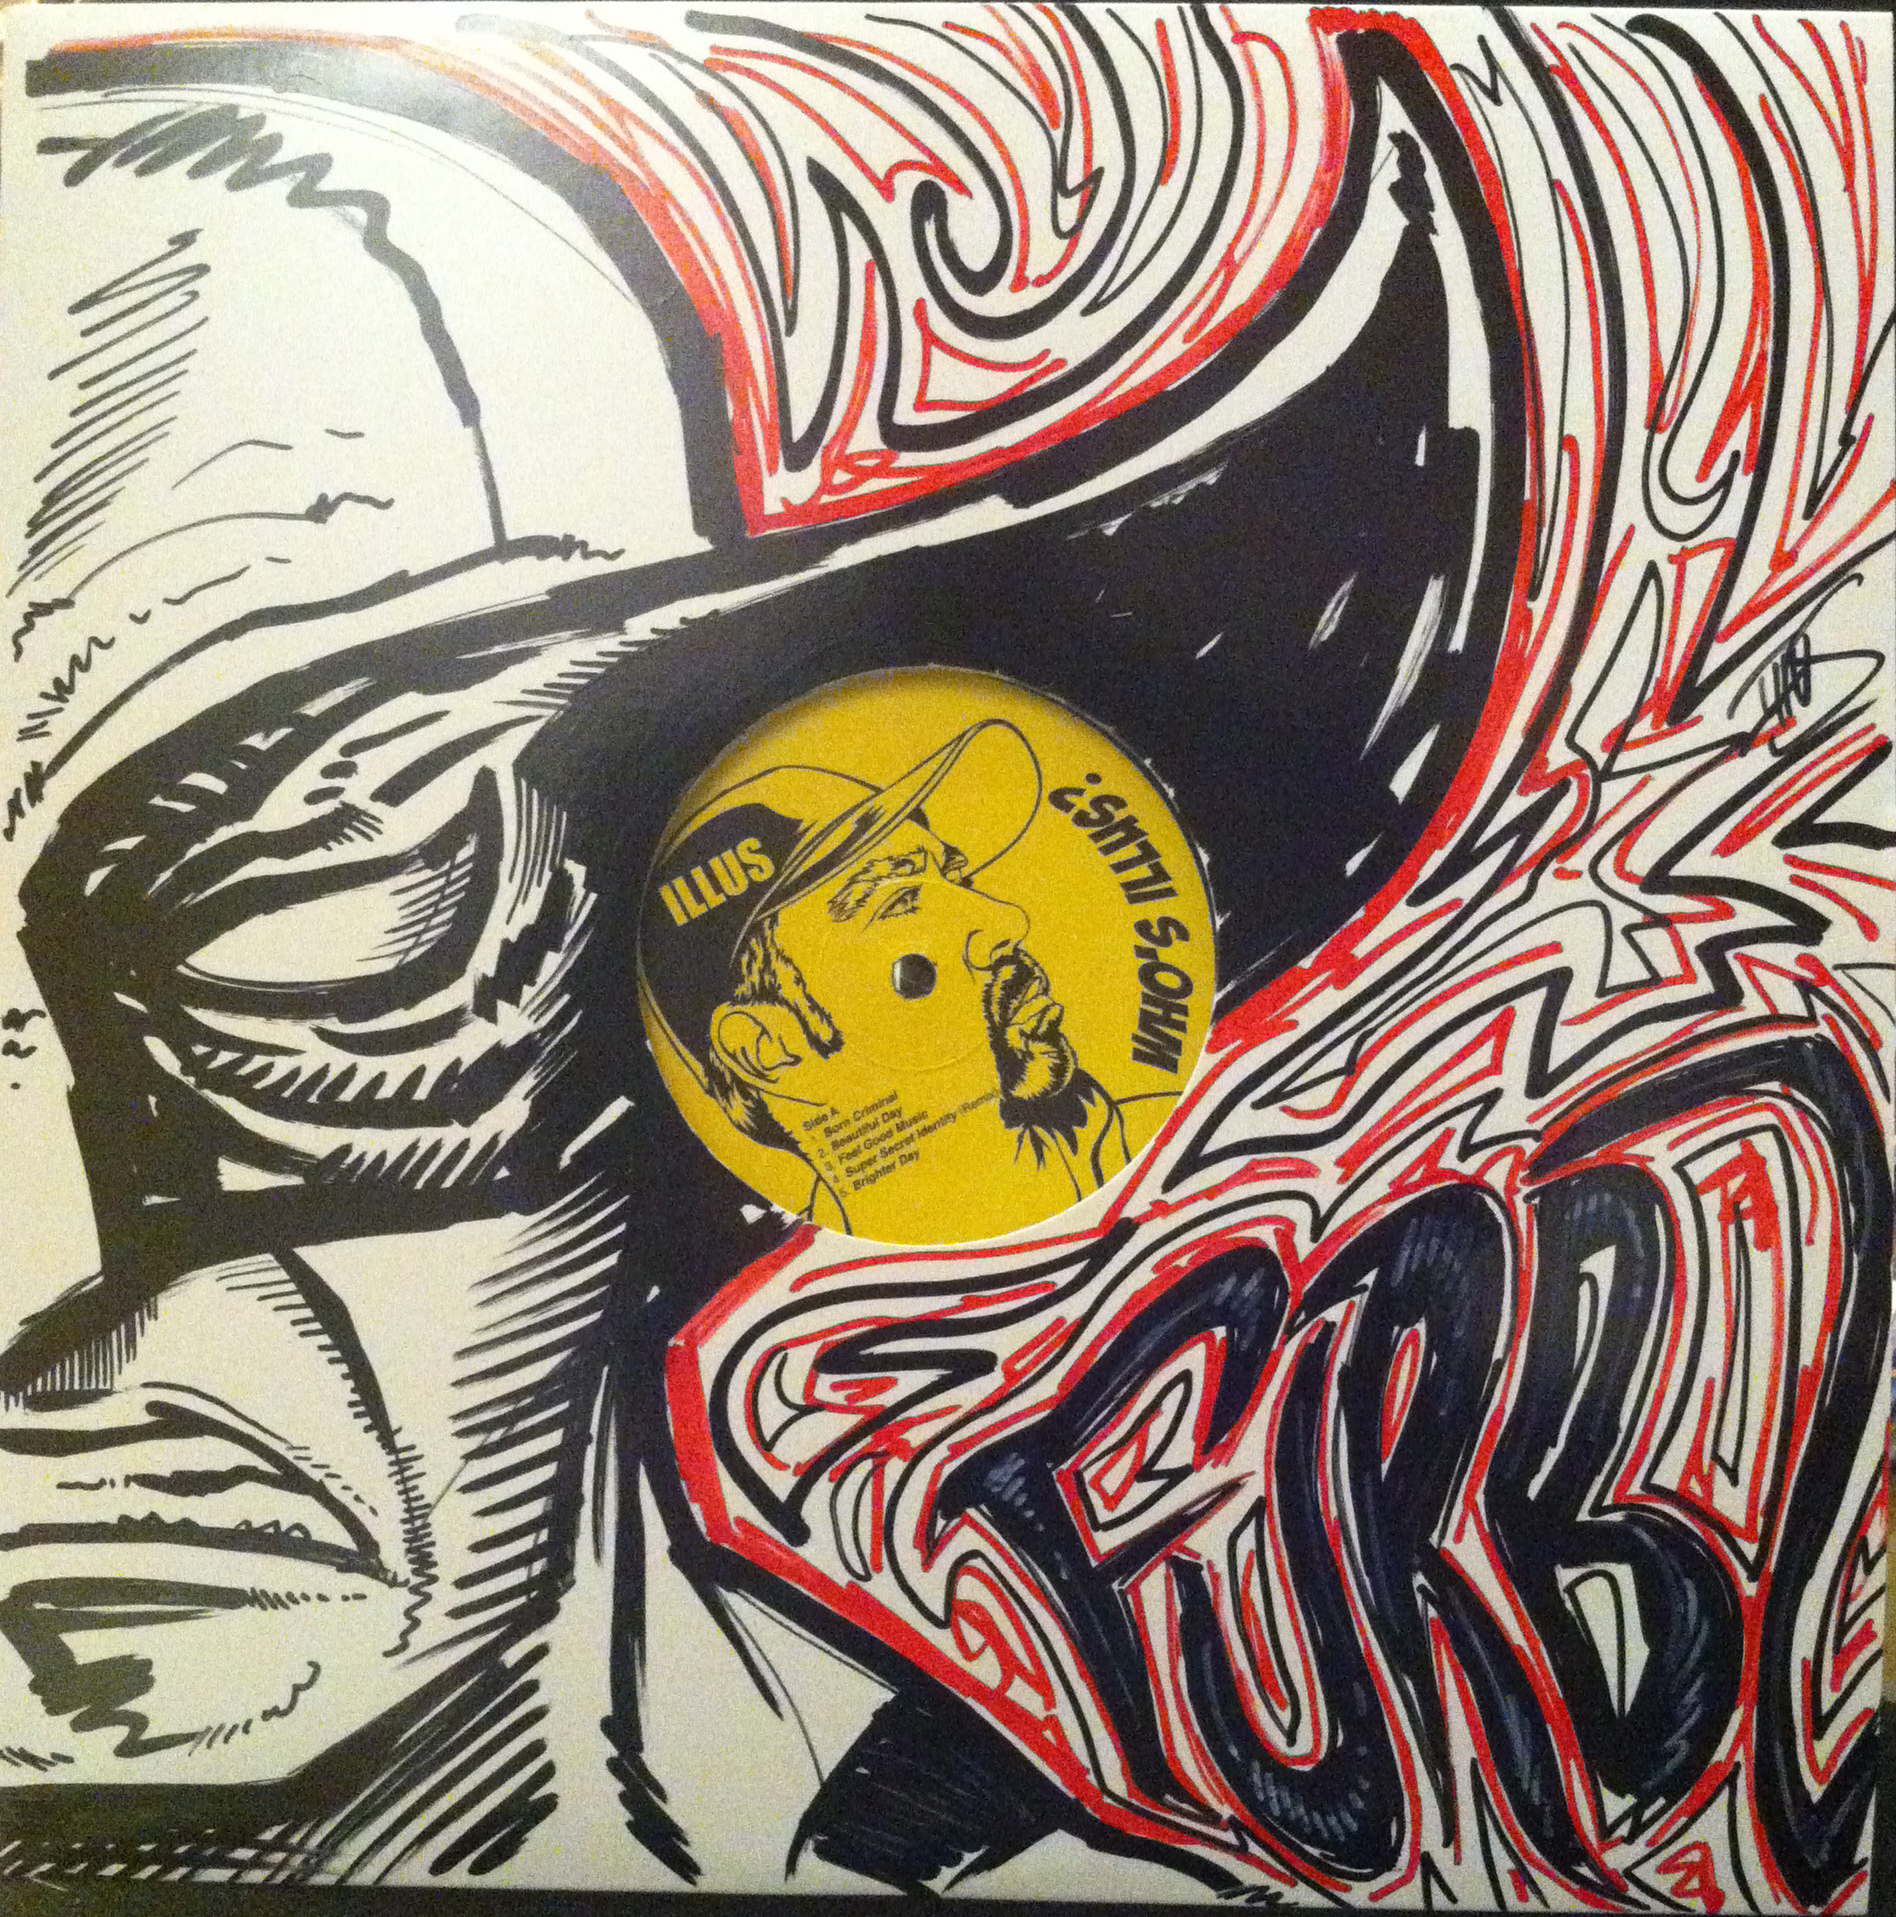 Who S Illus Limited 12 Inch With Original Sketch Cover